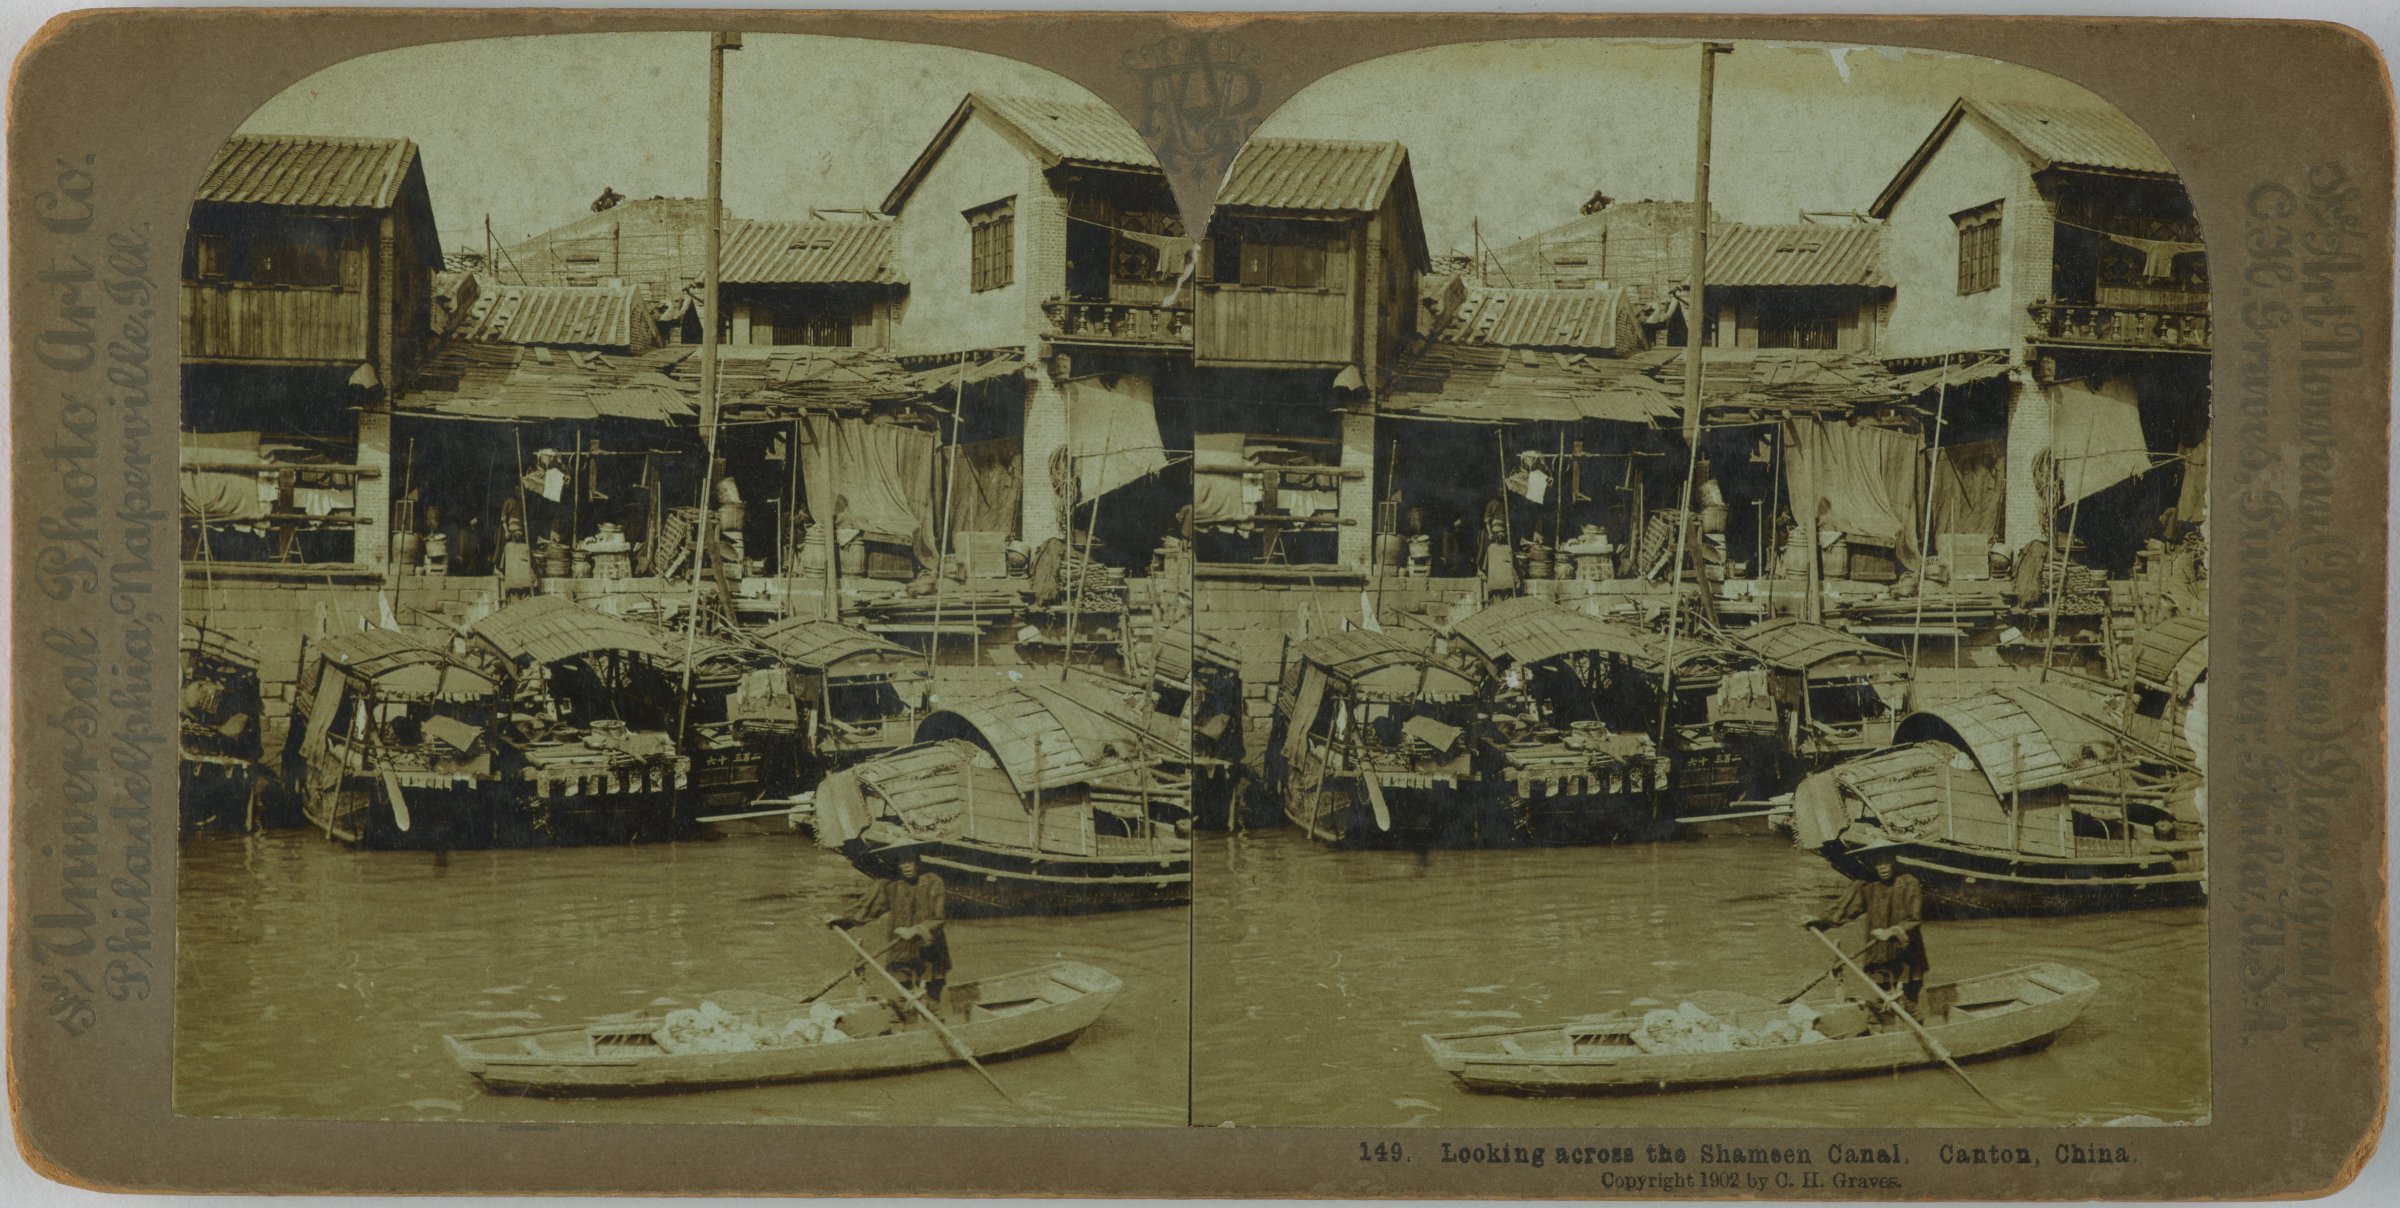 Looking across the Shameen Canal, Canton, China, The Universal Photo Art Co., gelatin silver prints mounted on card